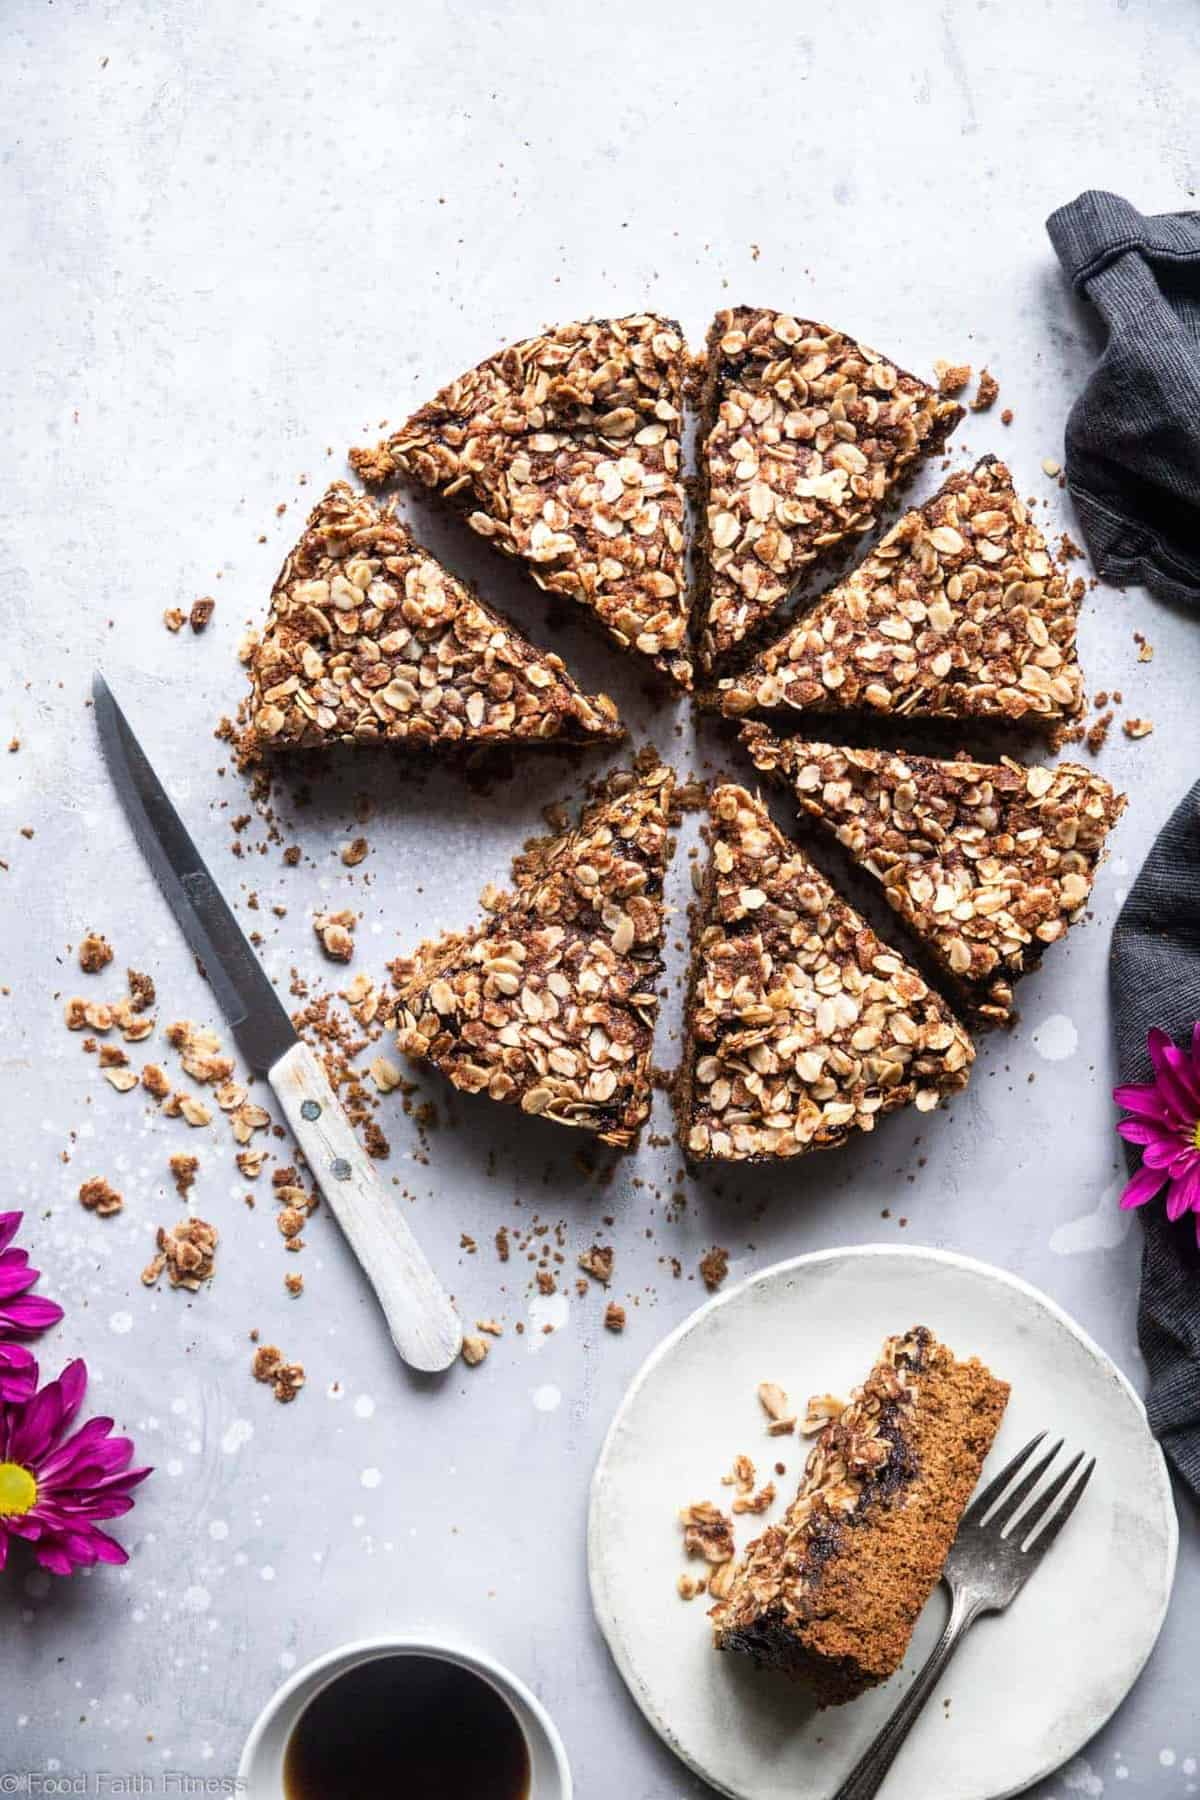 Gluten Free Vegan Coffee Cake - This tender, moist Gluten Free Coffee Cake has a tasty blackberry swirl and is loaded with a crunchy, crispy crumble topping! It's sure to be a hit and does not taste healthy! | #Foodfaithfitness | #Glutenfree #Vegan #dairyfree #eggfree #healthy